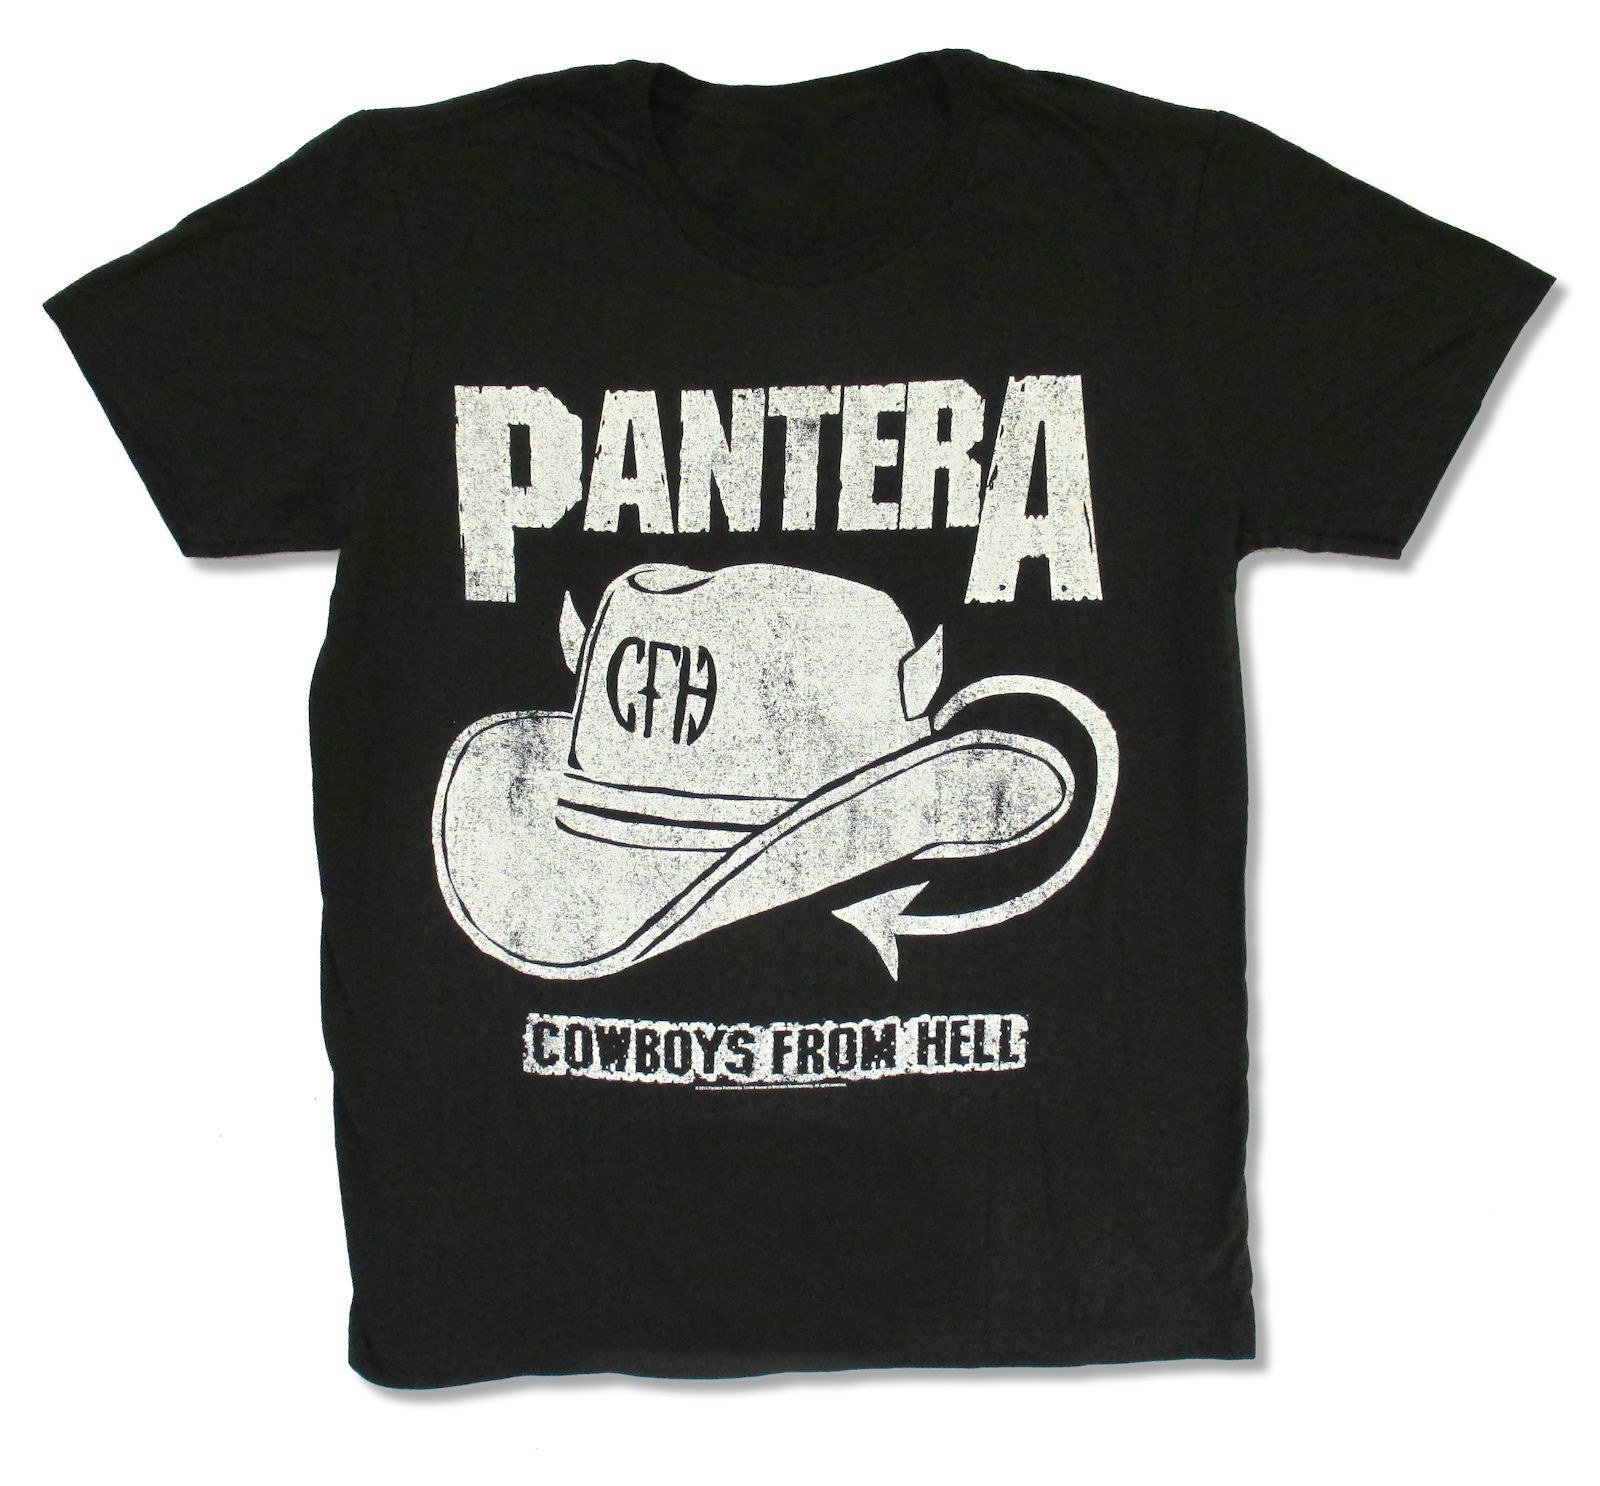 Design your own eco-friendly t-shirt - Pantera Distressed Hat Black T Shirt New Official Adult Design And Print Your Own T Shirt